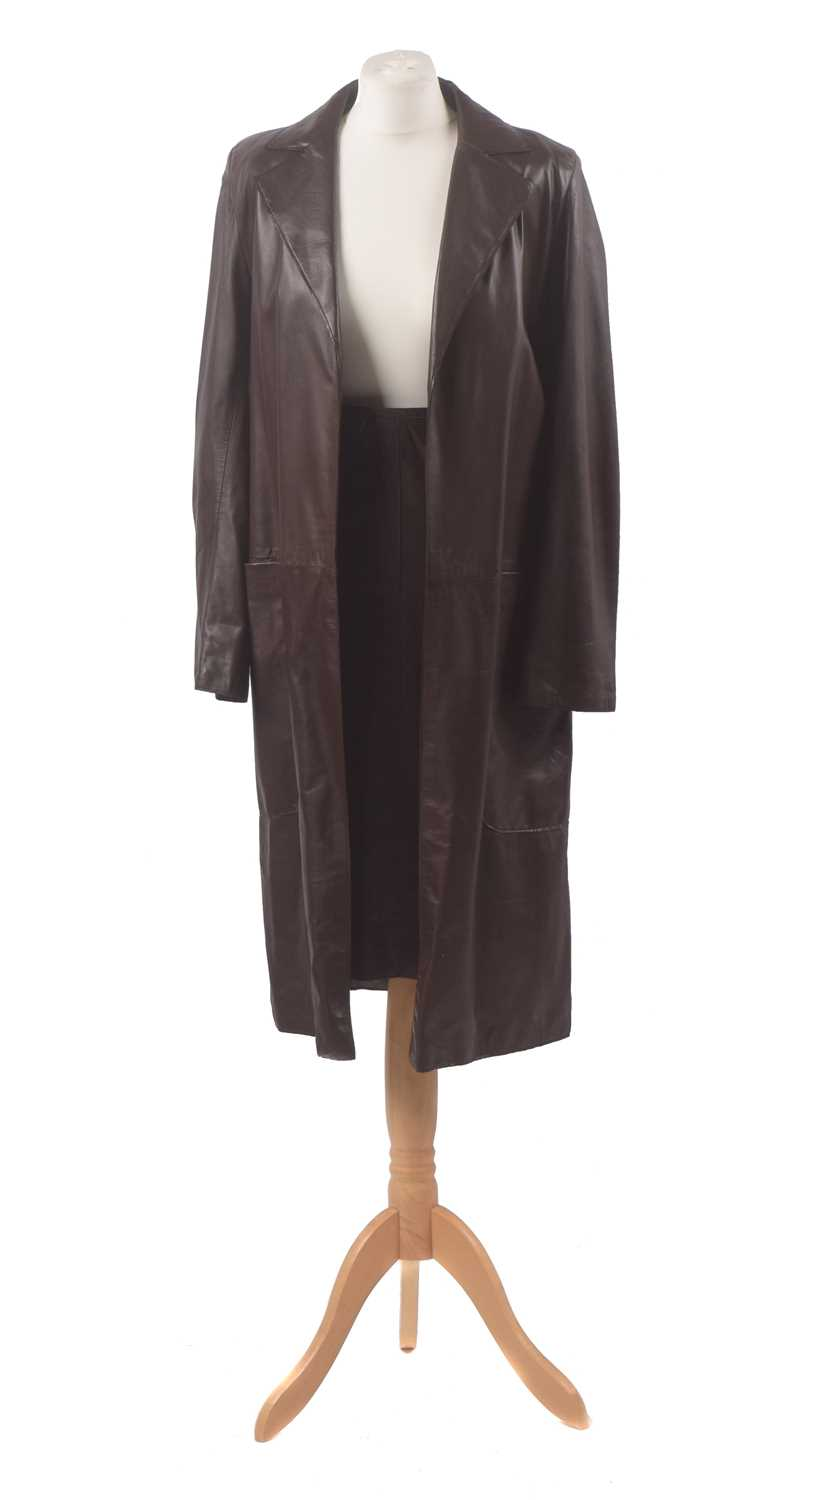 Lot 29 - A leather coat and skirt by Mulberry